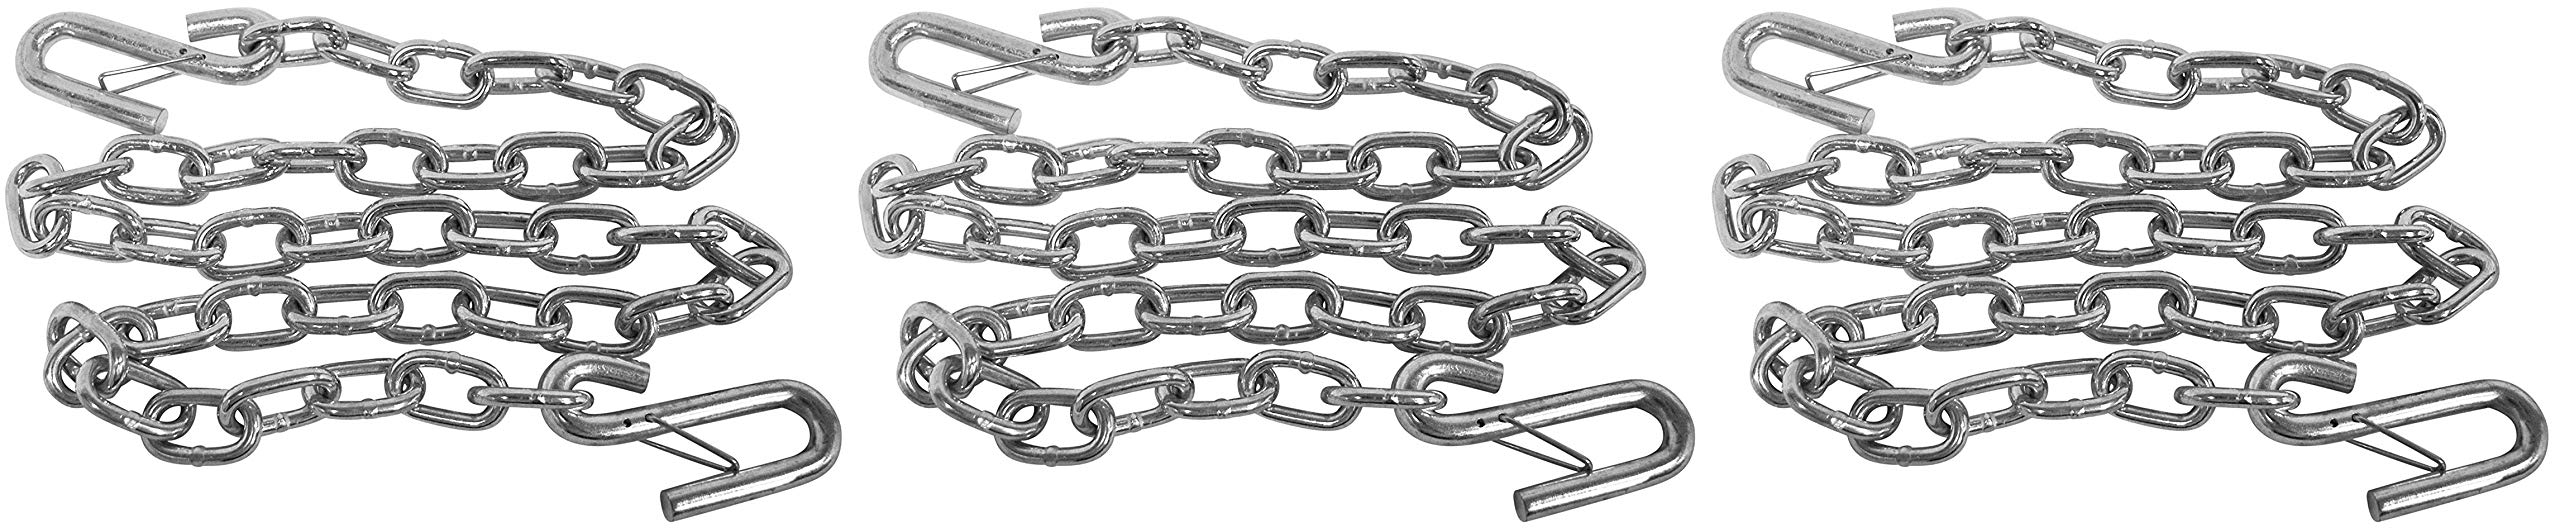 attwood 11011-7 Heavy-Duty 51-inch Steel Trailer Safety Chain with Spring Clip Hooks (Тhrее Расk) by attwood